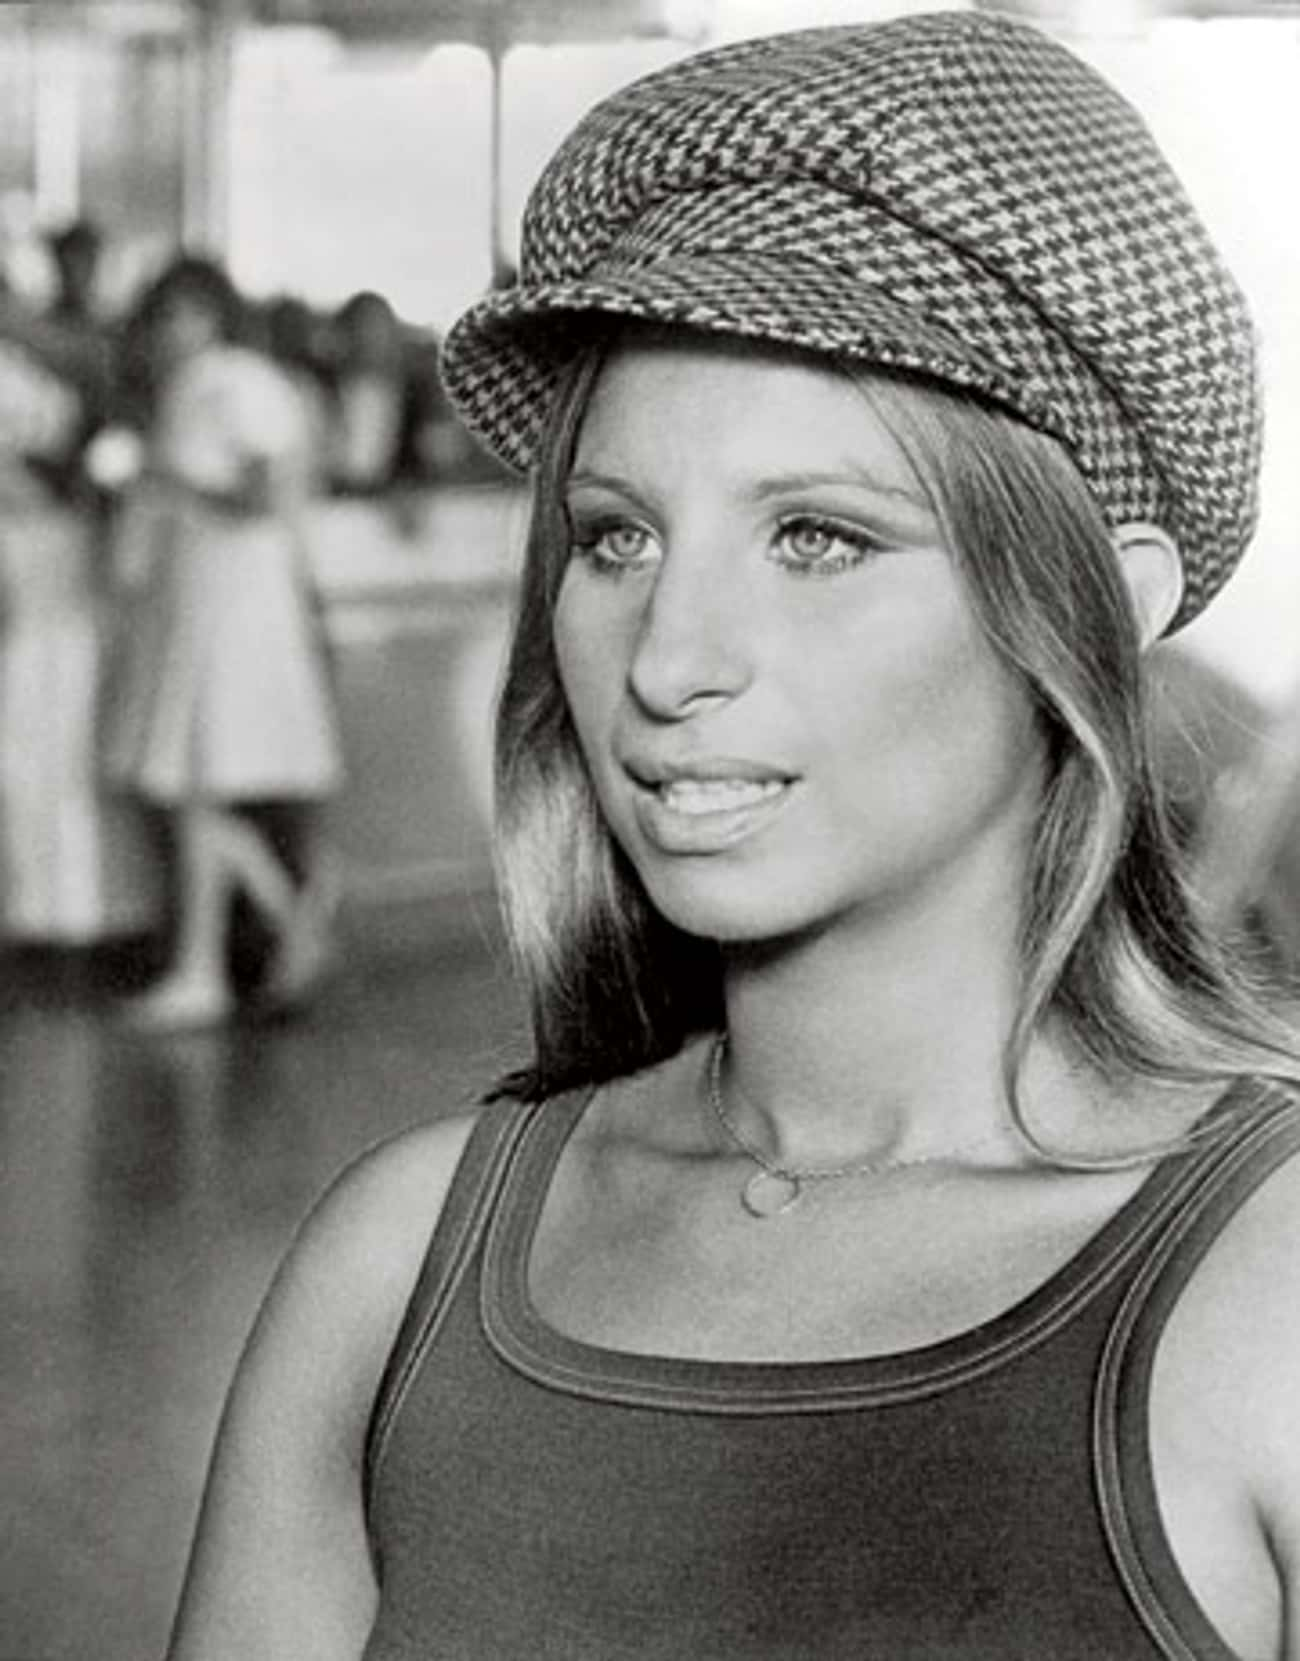 Young Barbra Streisand with Ch is listed (or ranked) 2 on the list 20 Pictures of Young Barbra Streisand